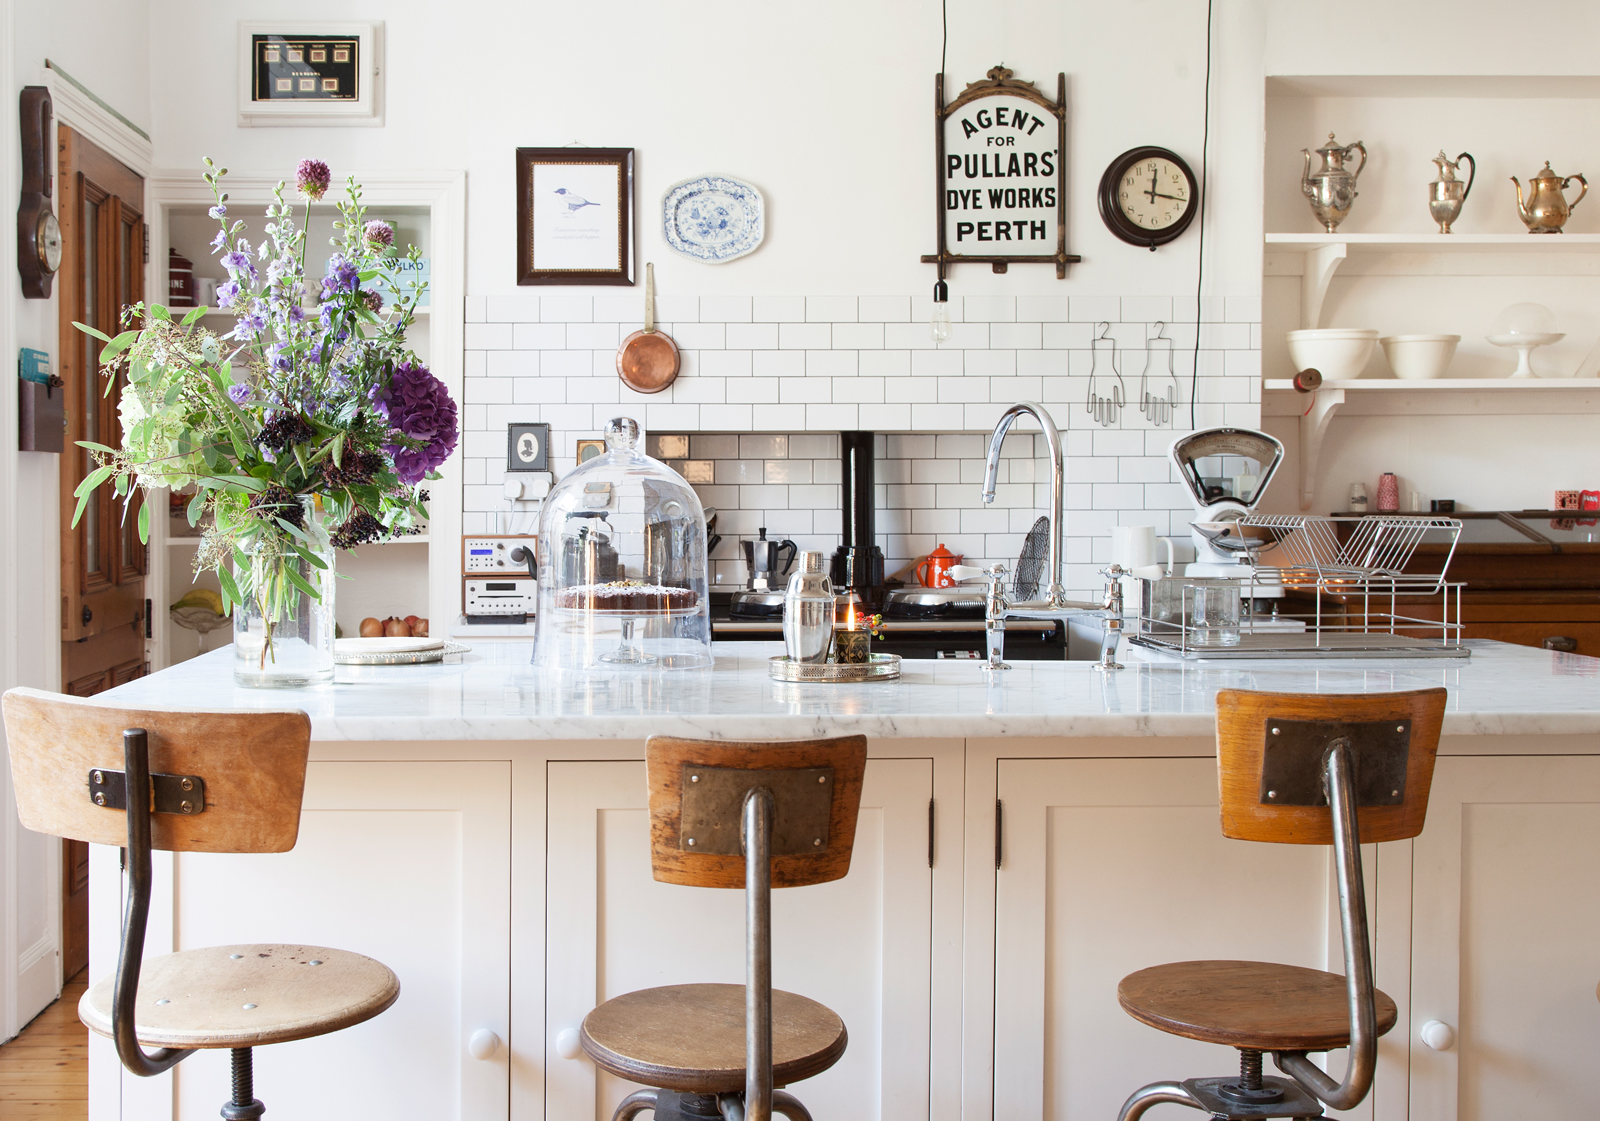 White+Edwardian+kitchen+with+vintage+bar+stools.jpeg